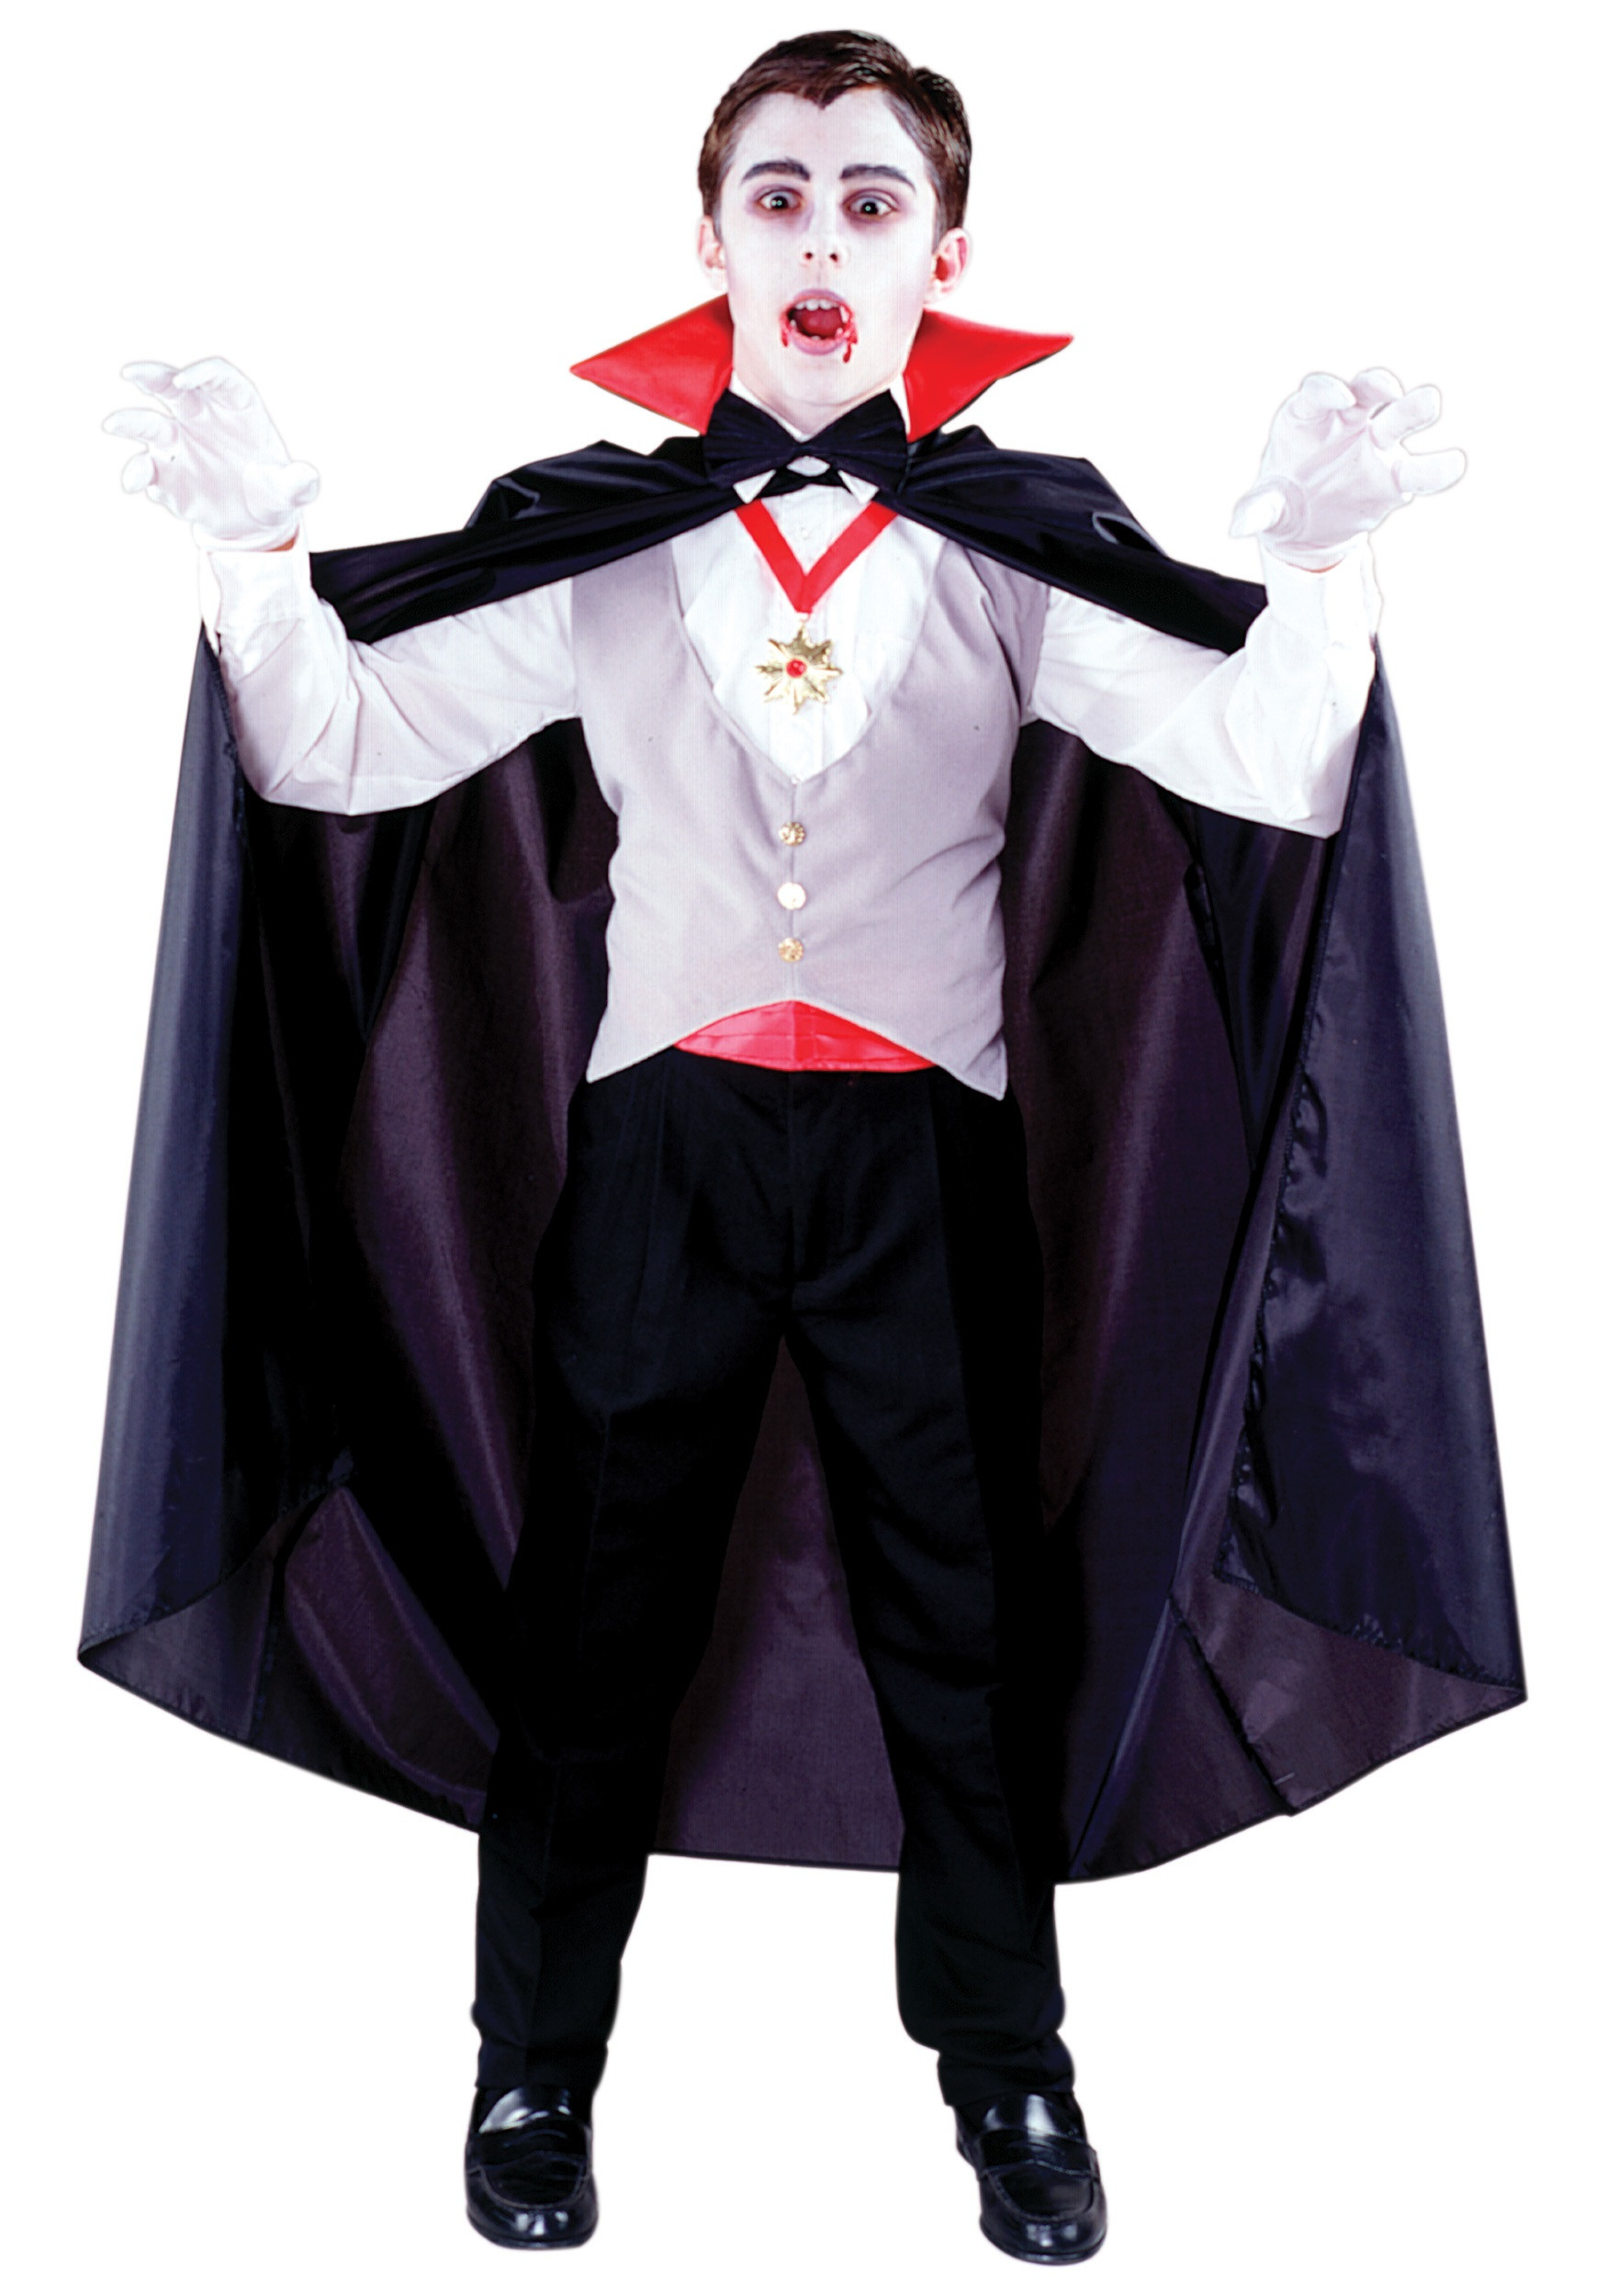 Best ideas about DIY Kids Vampire Costume . Save or Pin Boys Classic Vampire Costume Now.